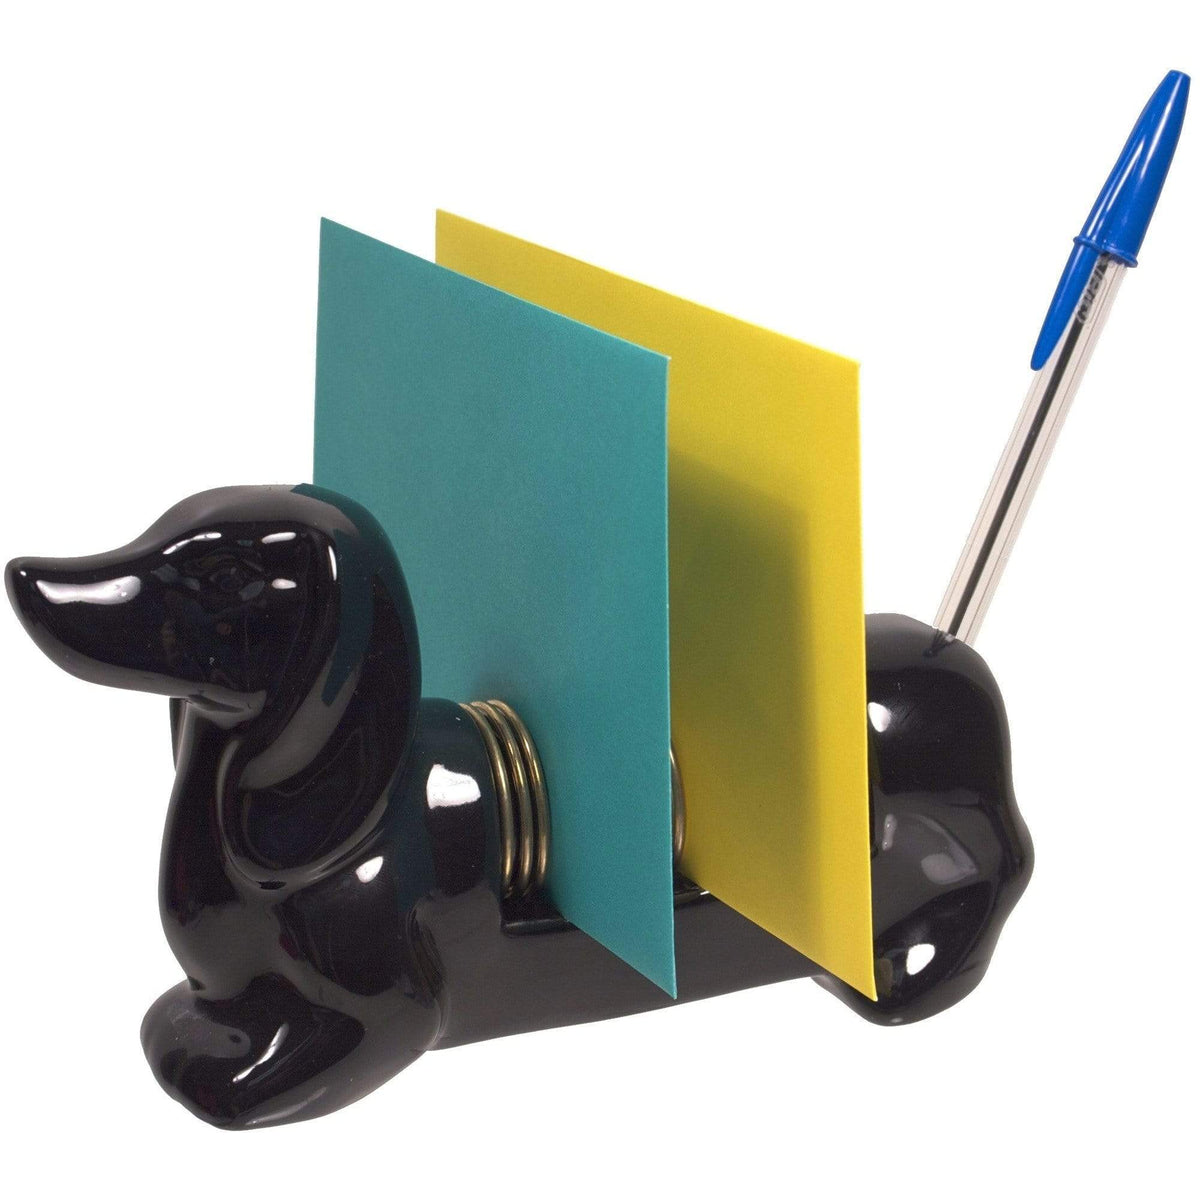 Dachshund Letter Holder